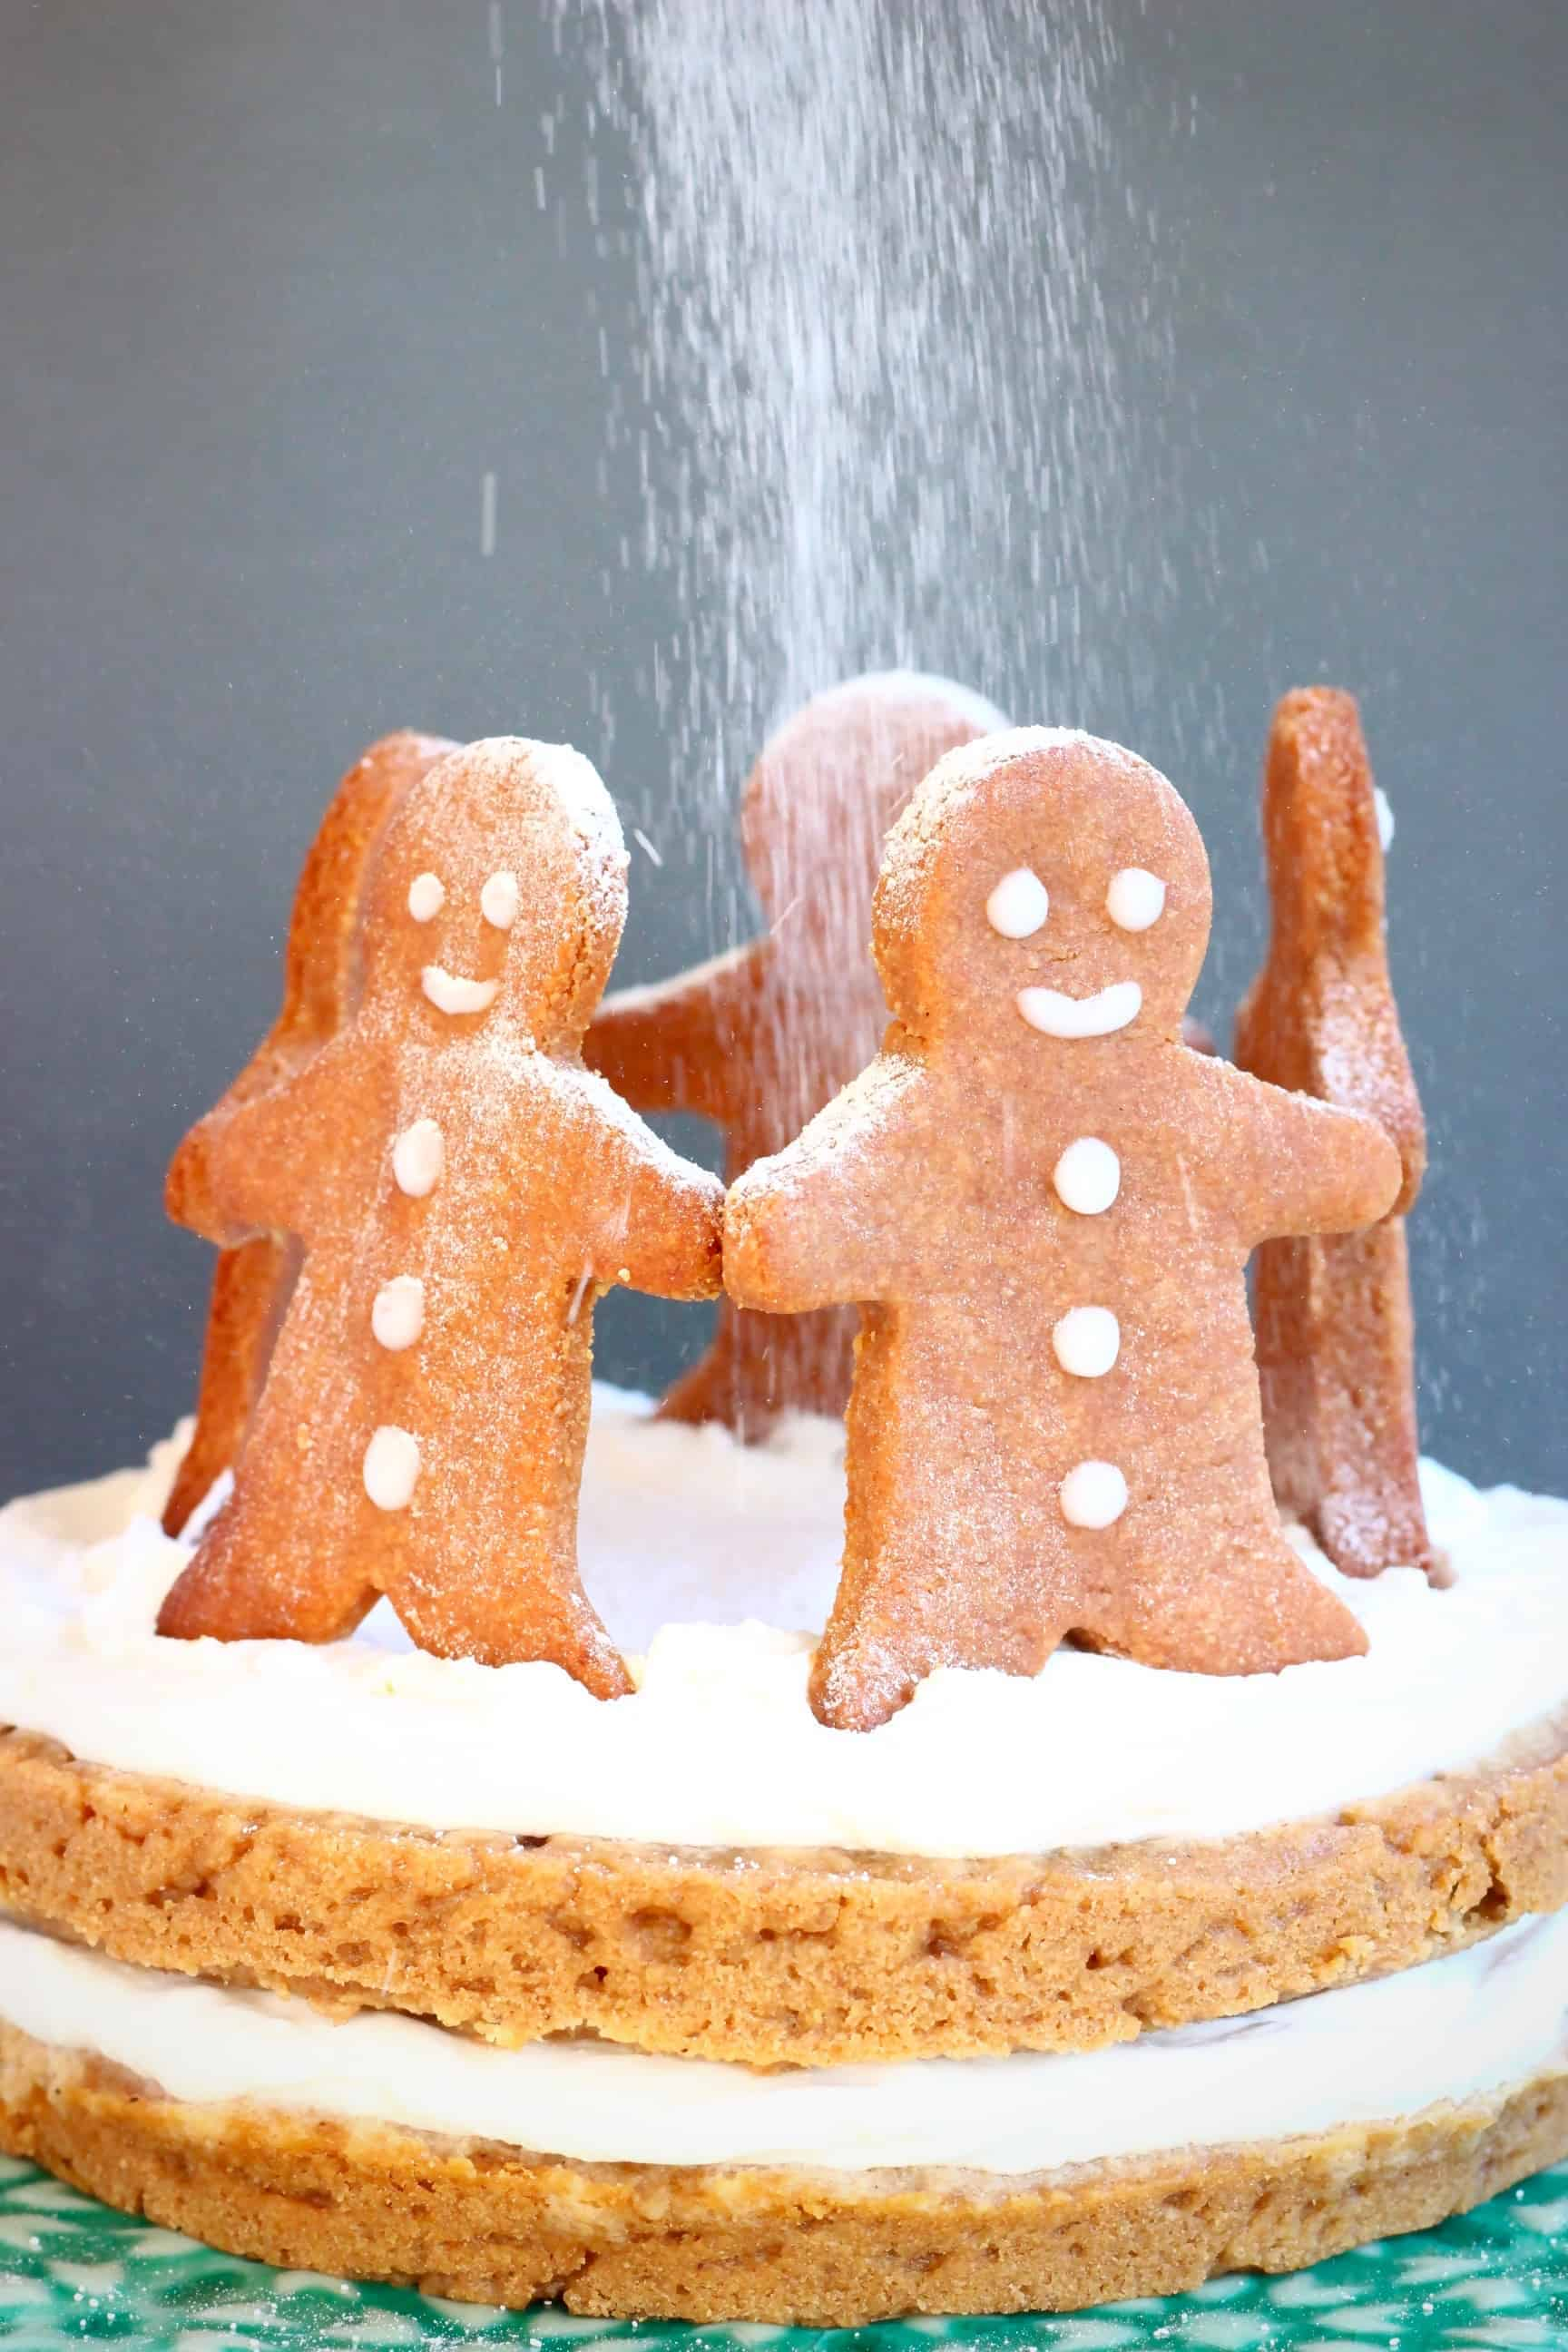 A gingerbread sponge cake sandwiched with white cream topped with five gingerbread men cookies standing in a circle with a dusting of white icing sugar